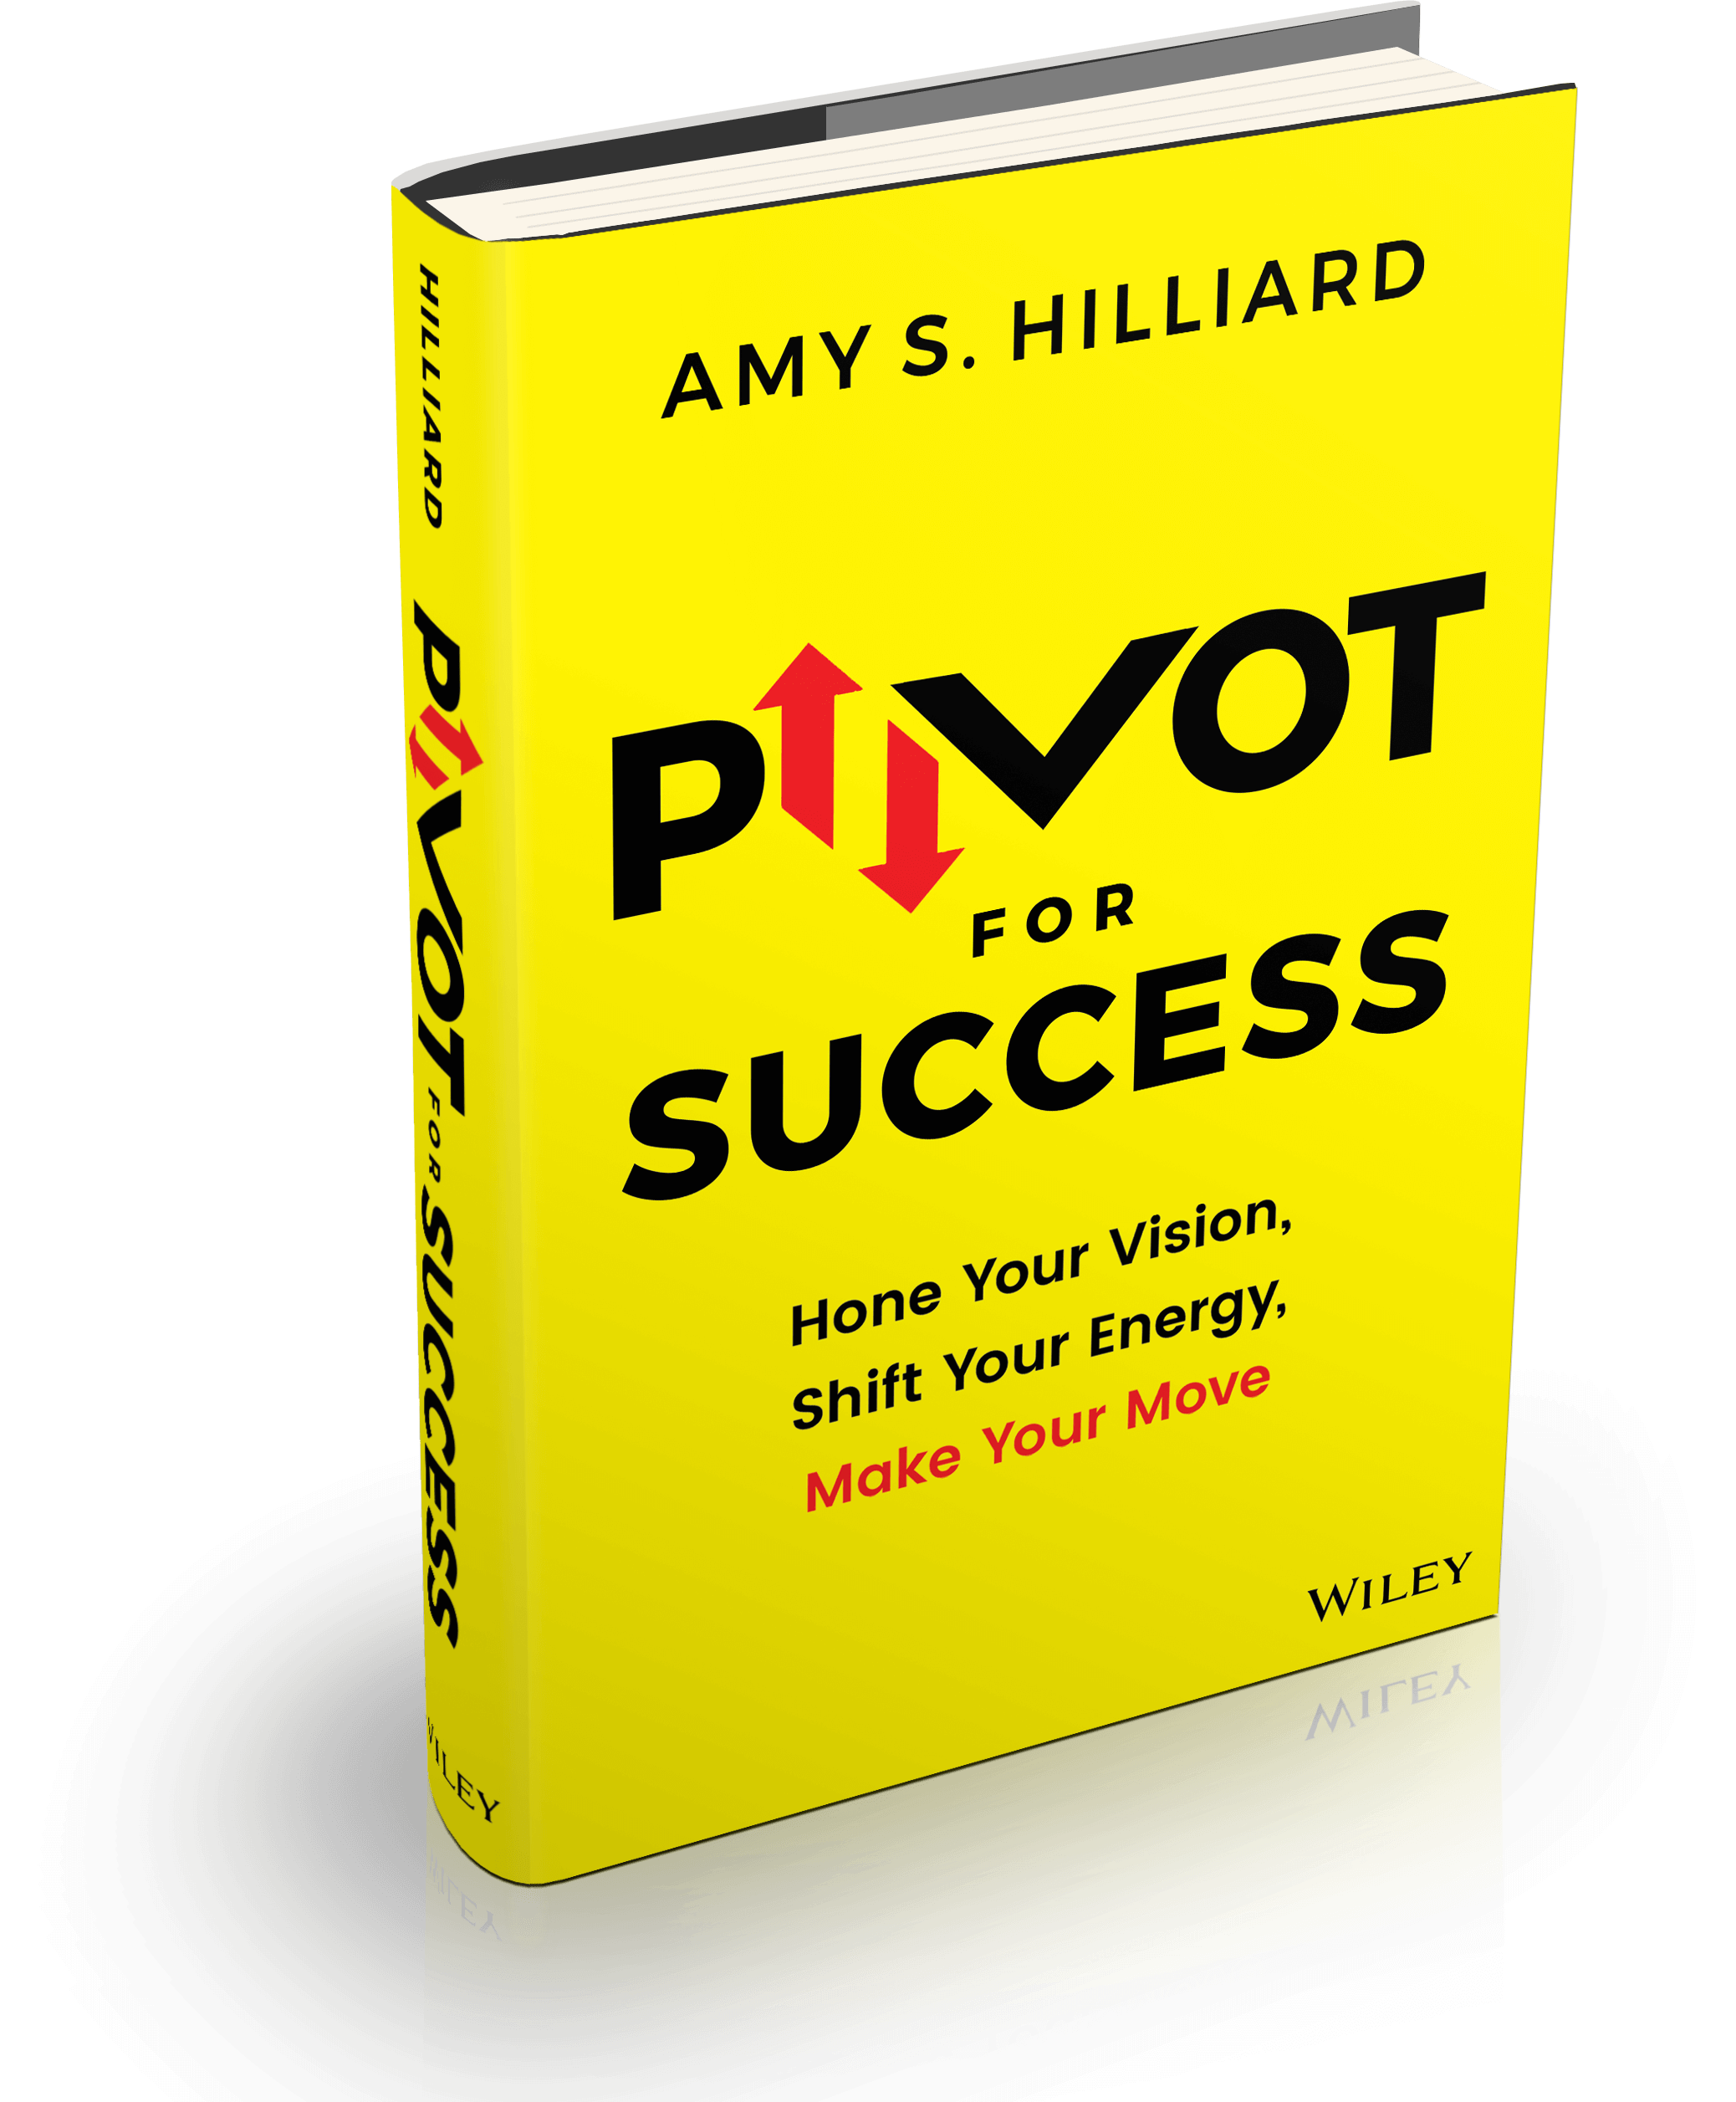 Hilliard_3D_Pivot for Success - book (1)